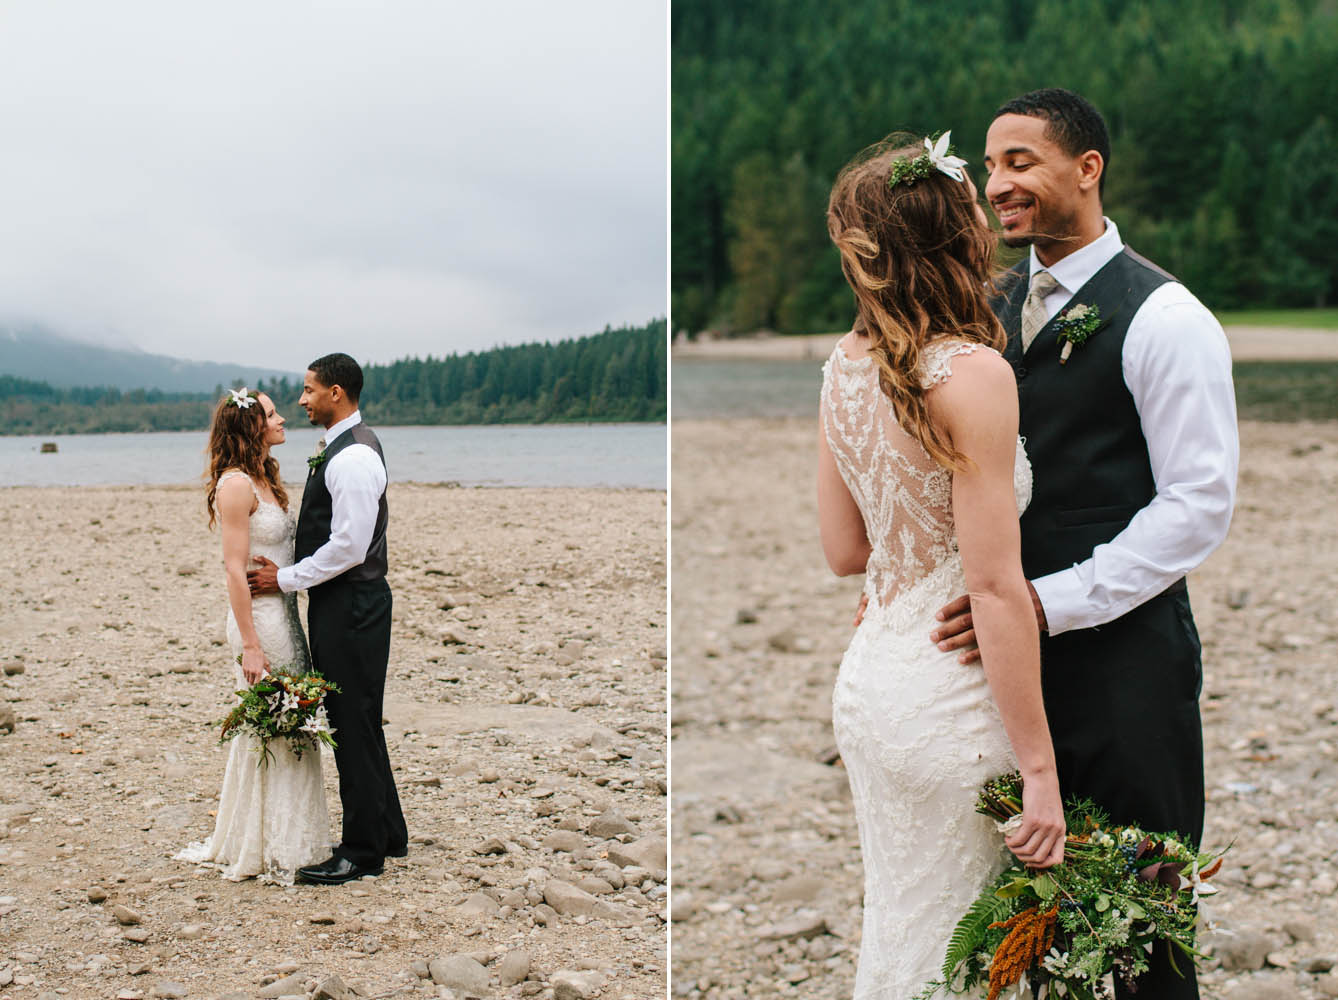 Jess-Hunter-Photography-Seattle-wedding-elopement-photographer-forest-wedding-2906.jpg